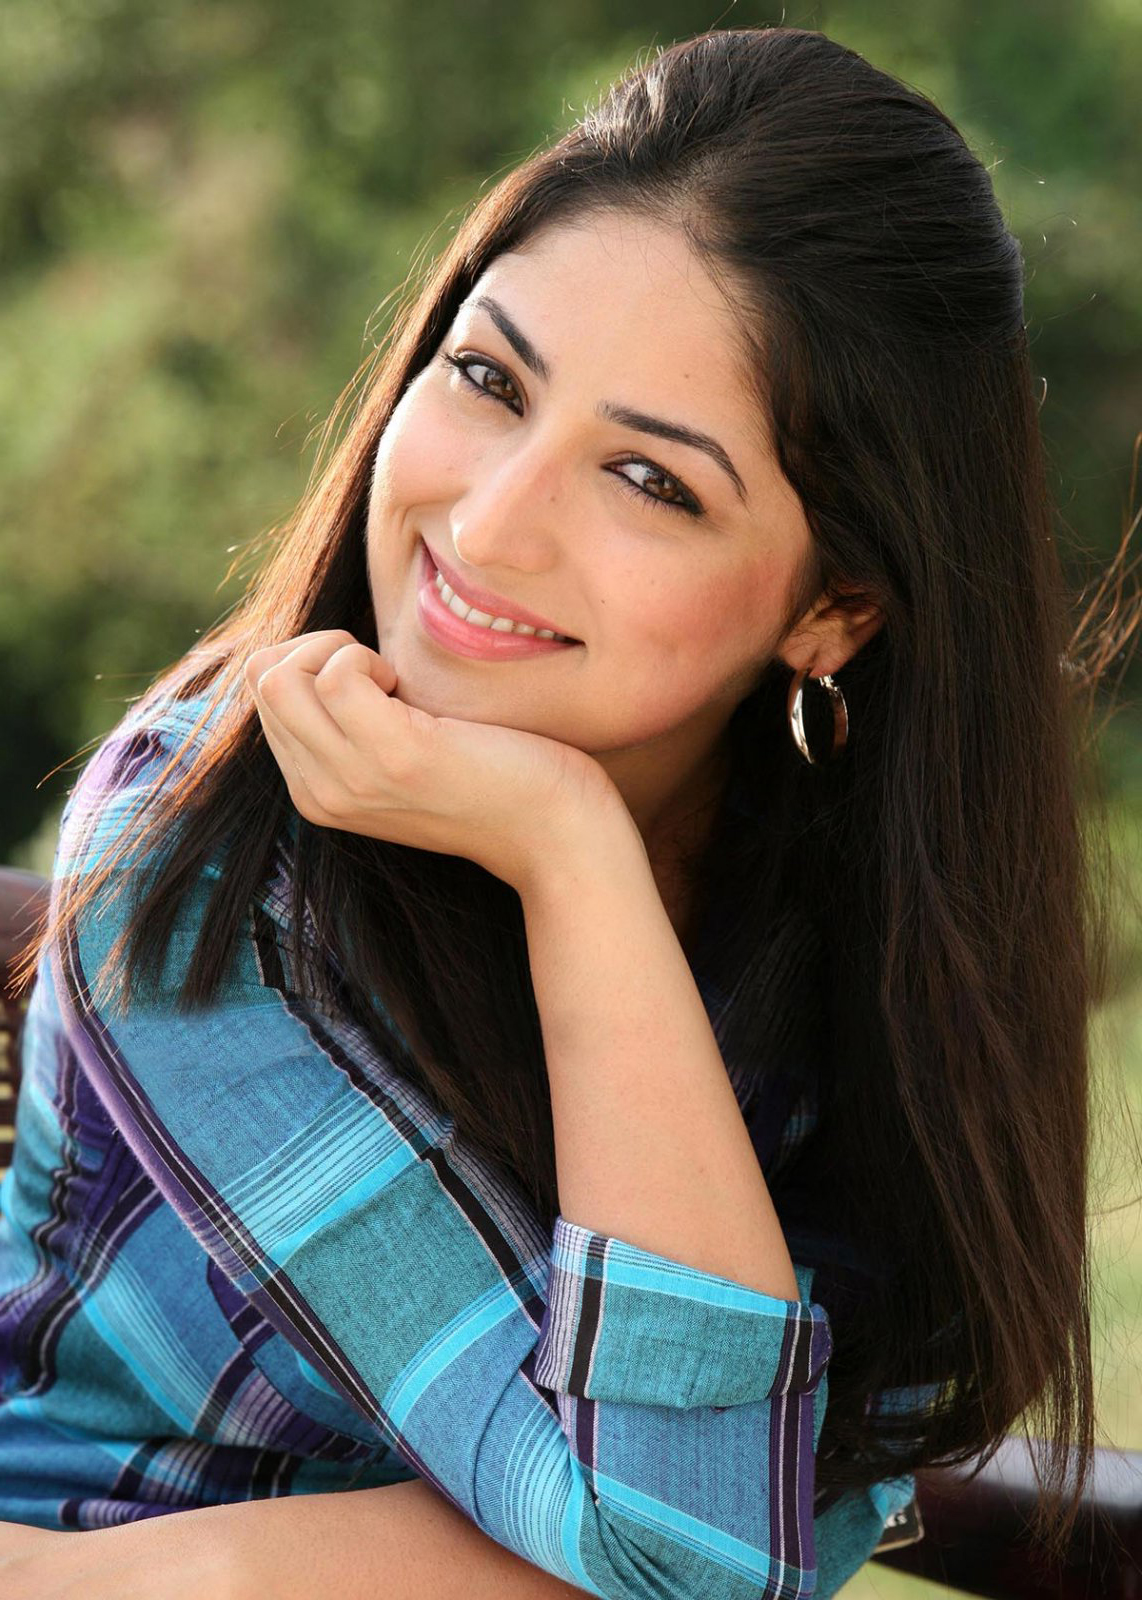 Download Yami Gautam Hd Wallpaper Download Gallery Glitter Wallpaper Creepypasta Choose from Our Pictures  Collections Wallpapers [x-site.ml]